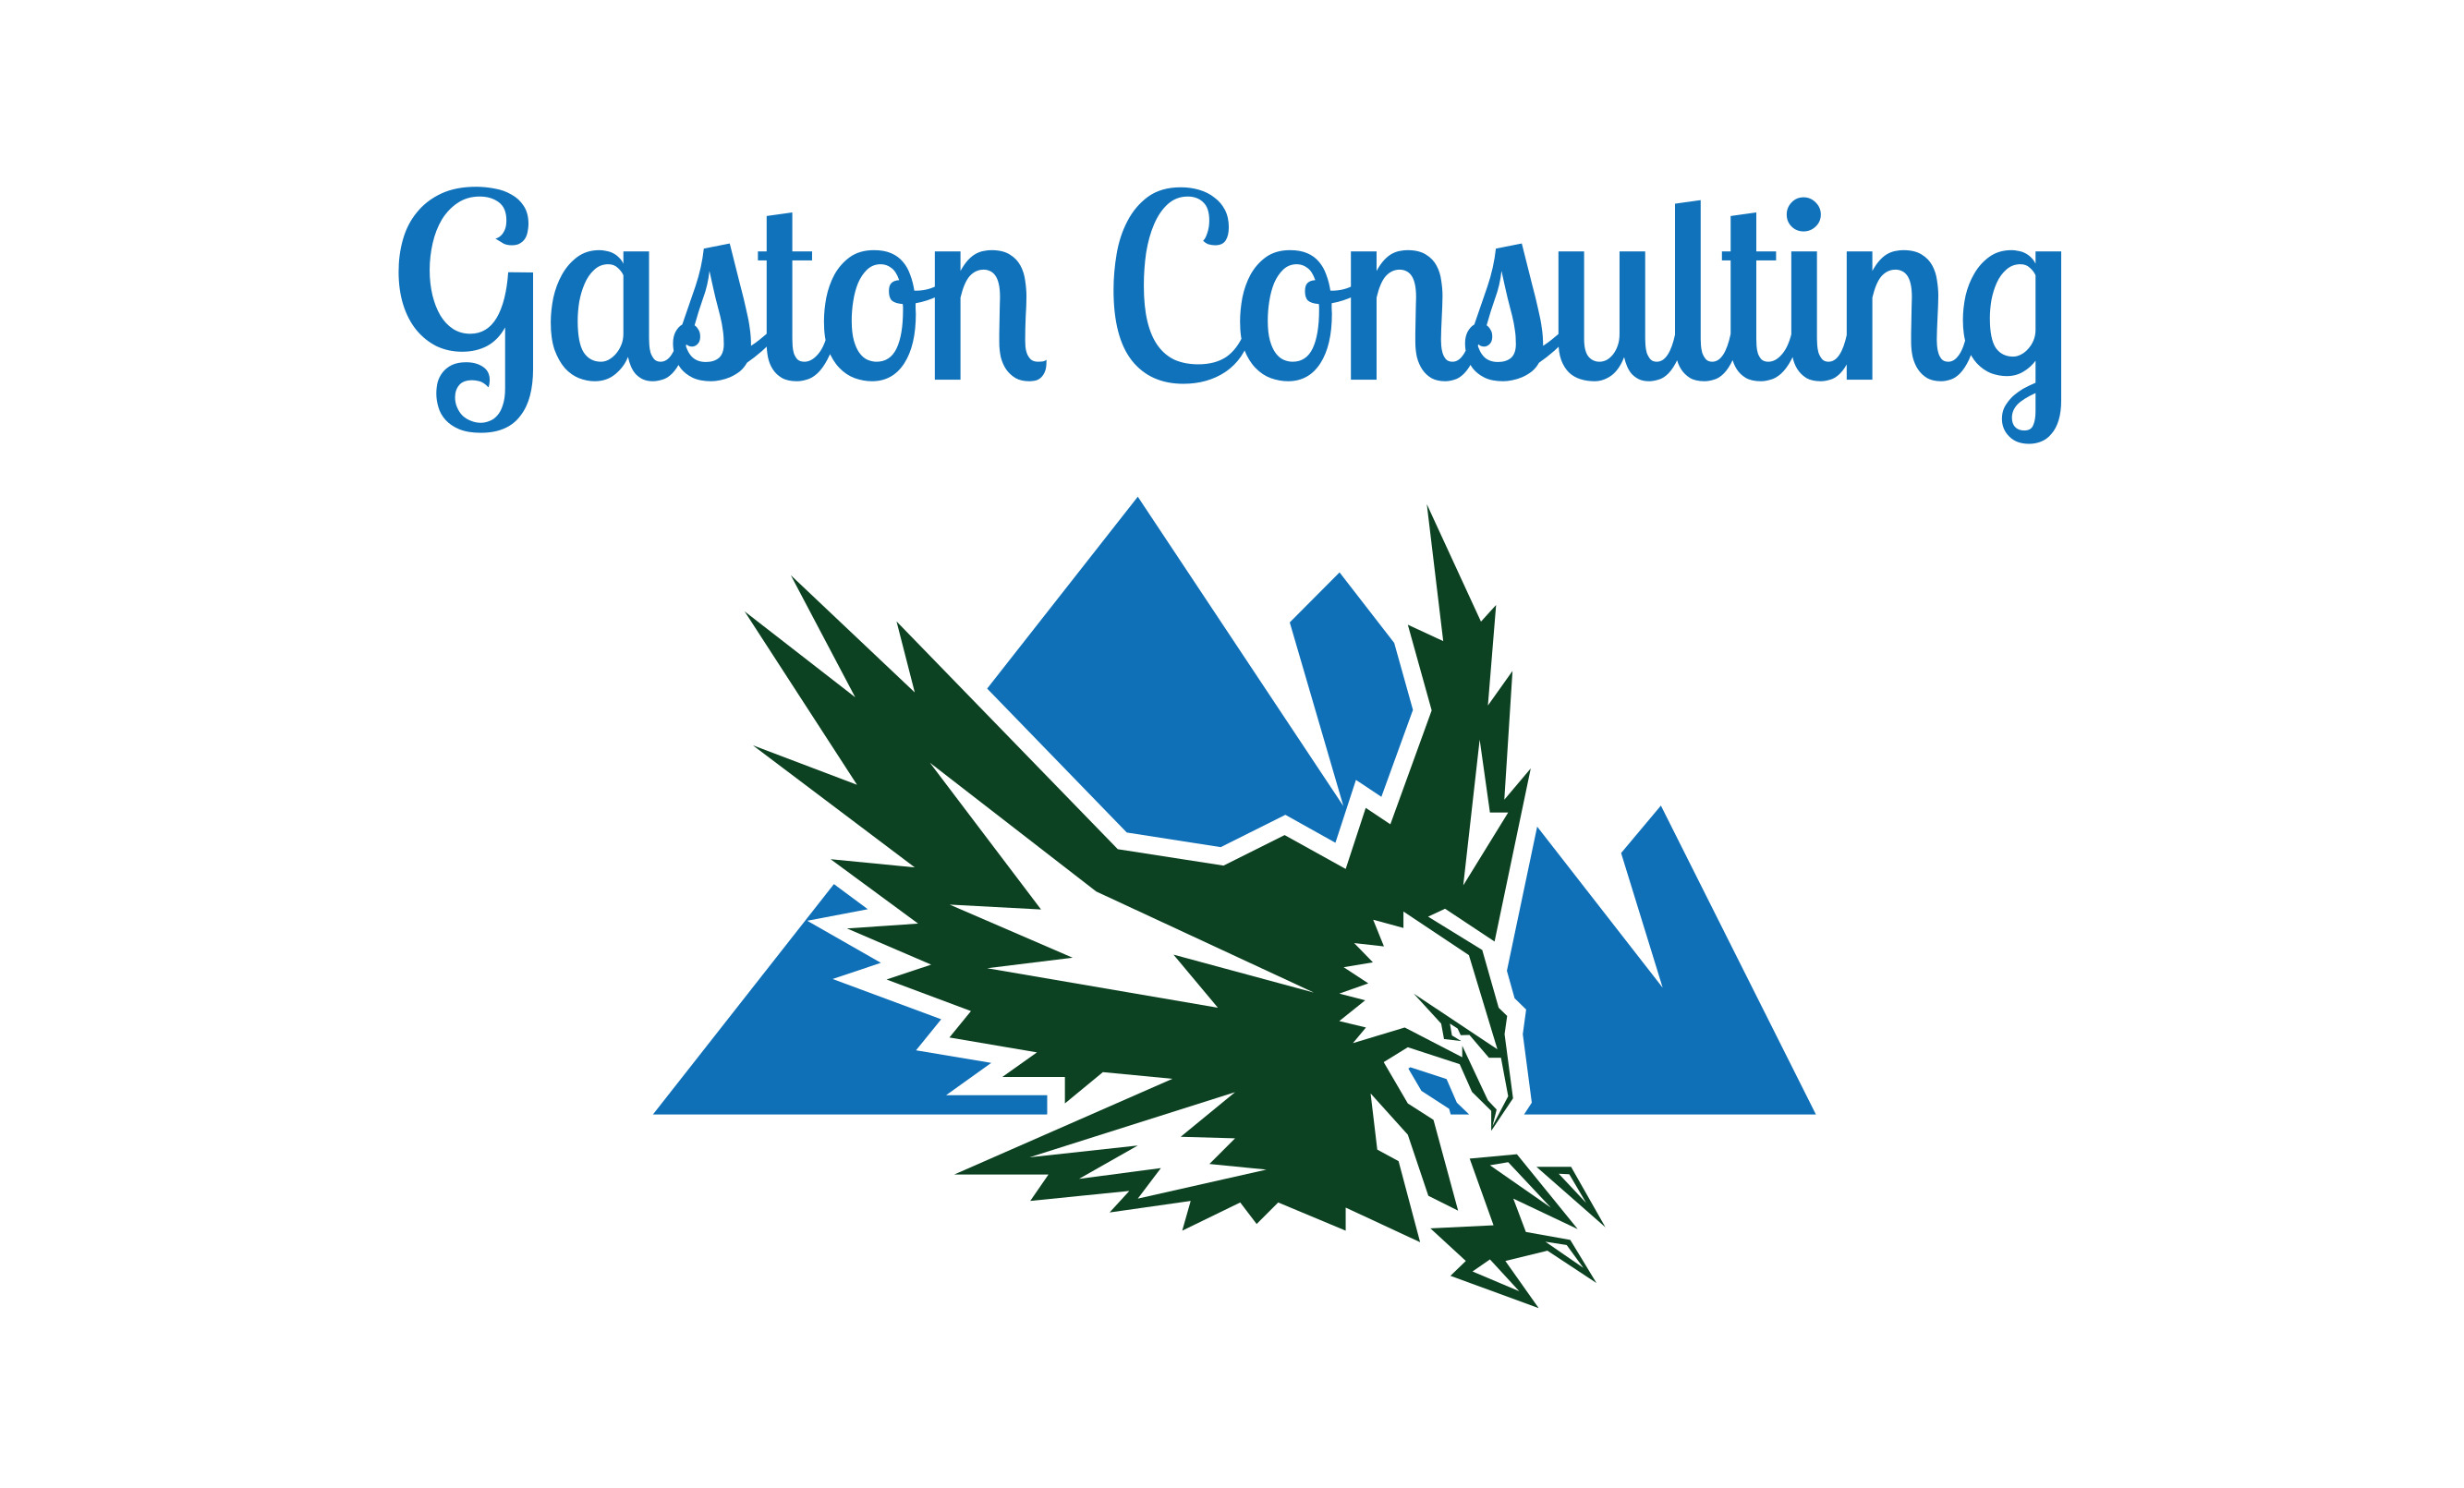 Gaston Consulting